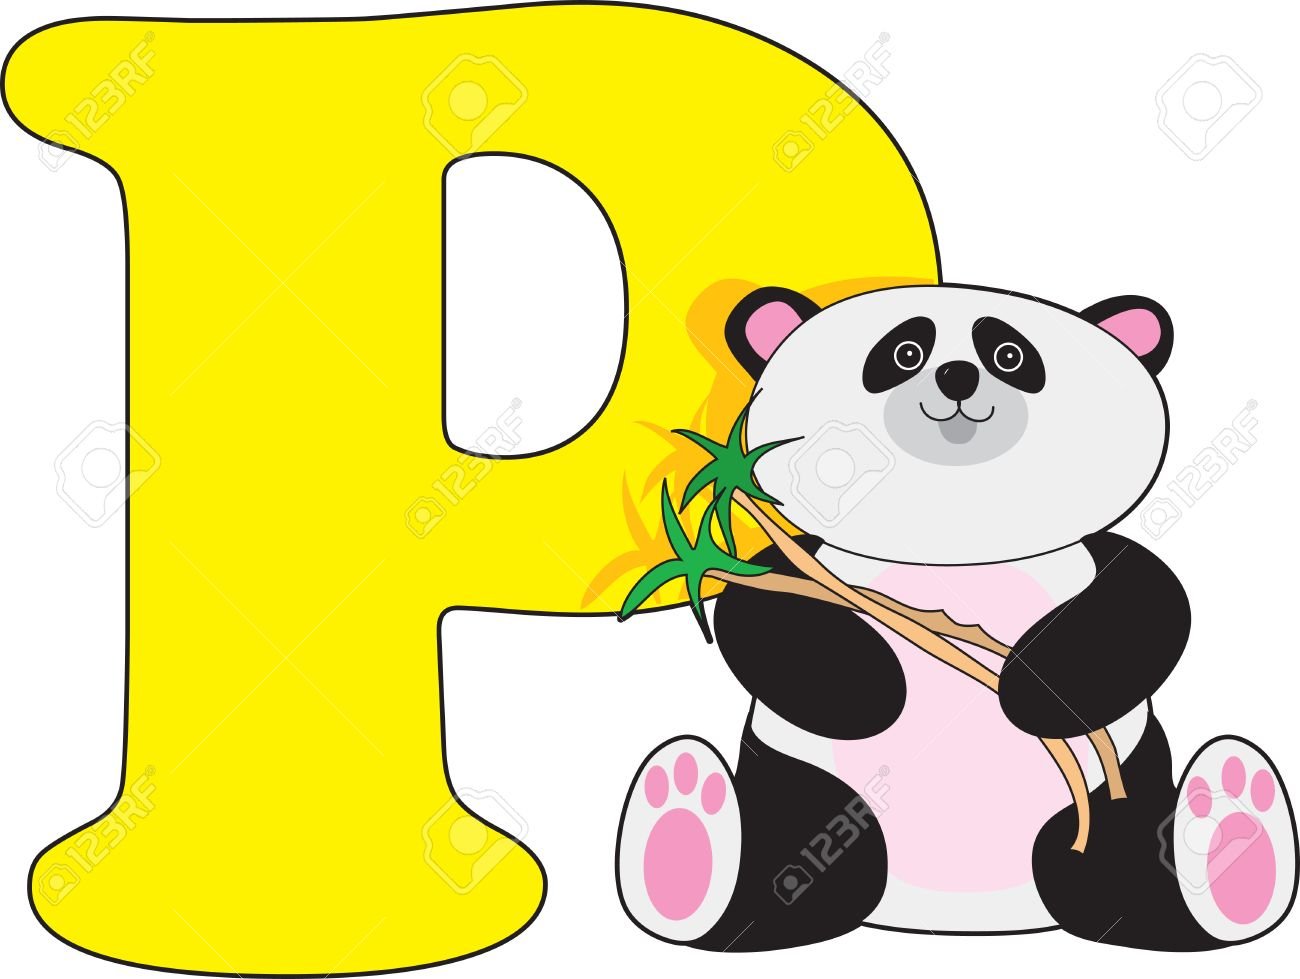 Letter P With A Panda Royalty Free Cliparts, Vectors, And Stock ...